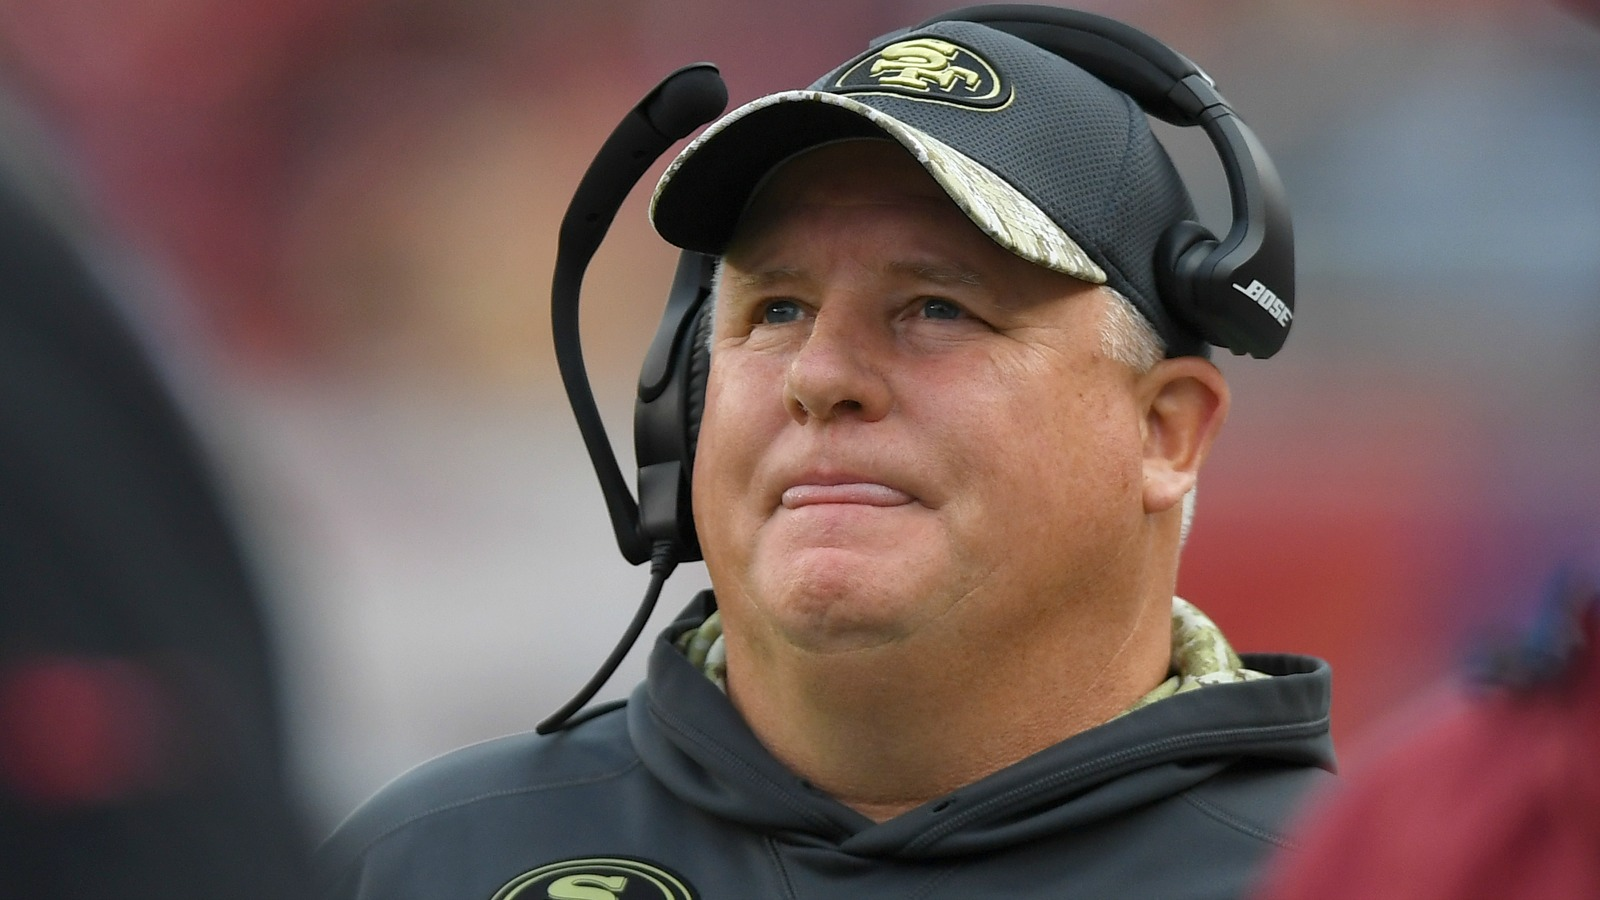 12-13-2016 Chip Kelly San Francisco 49ers